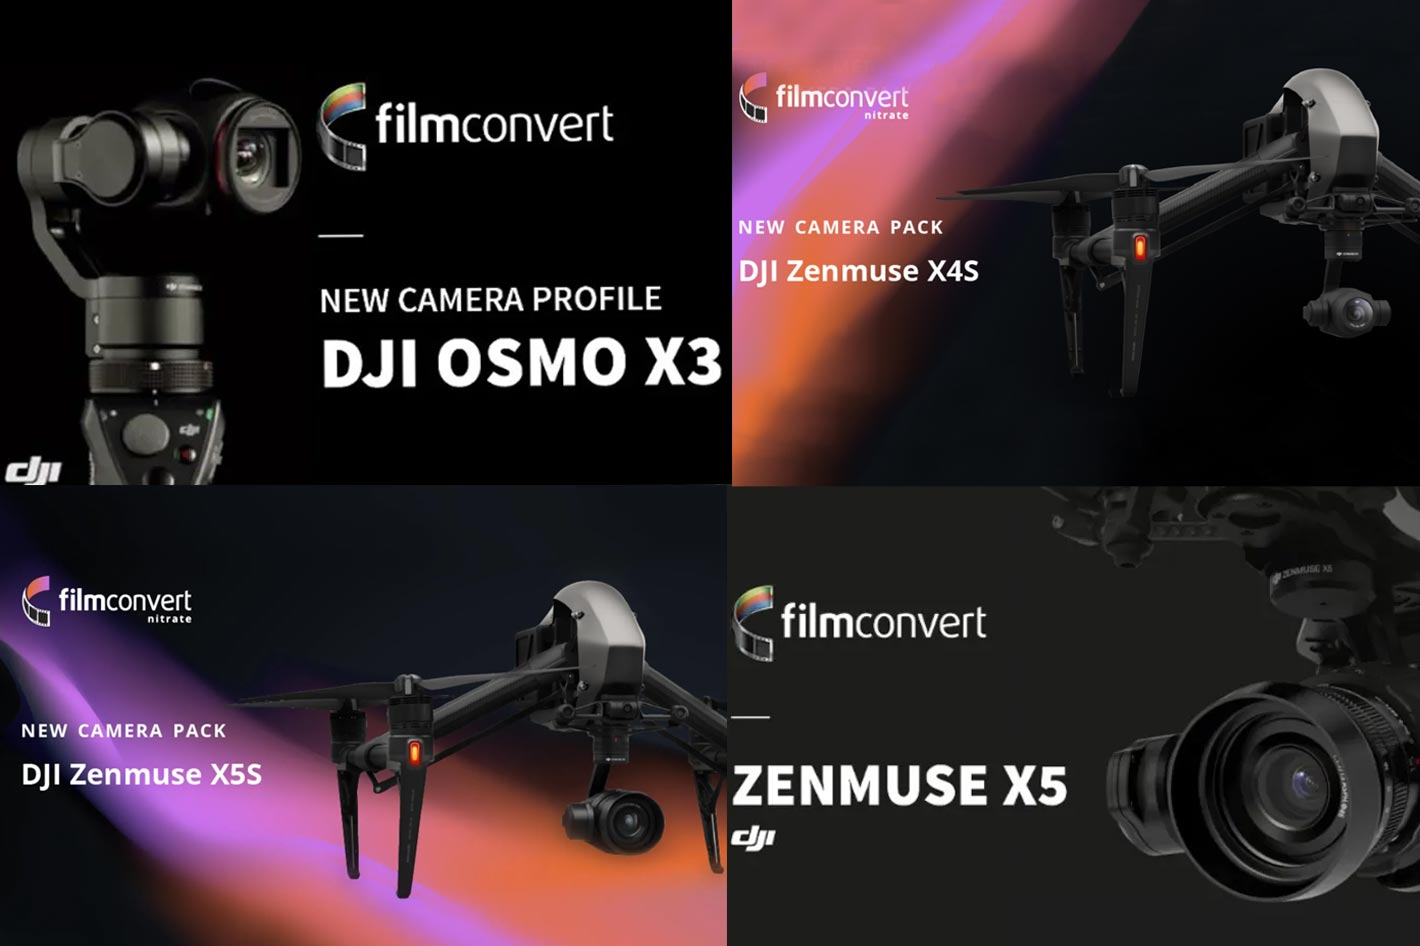 FilmConvert: a new dedicated camera pack for the DJI Zenmuse X4S